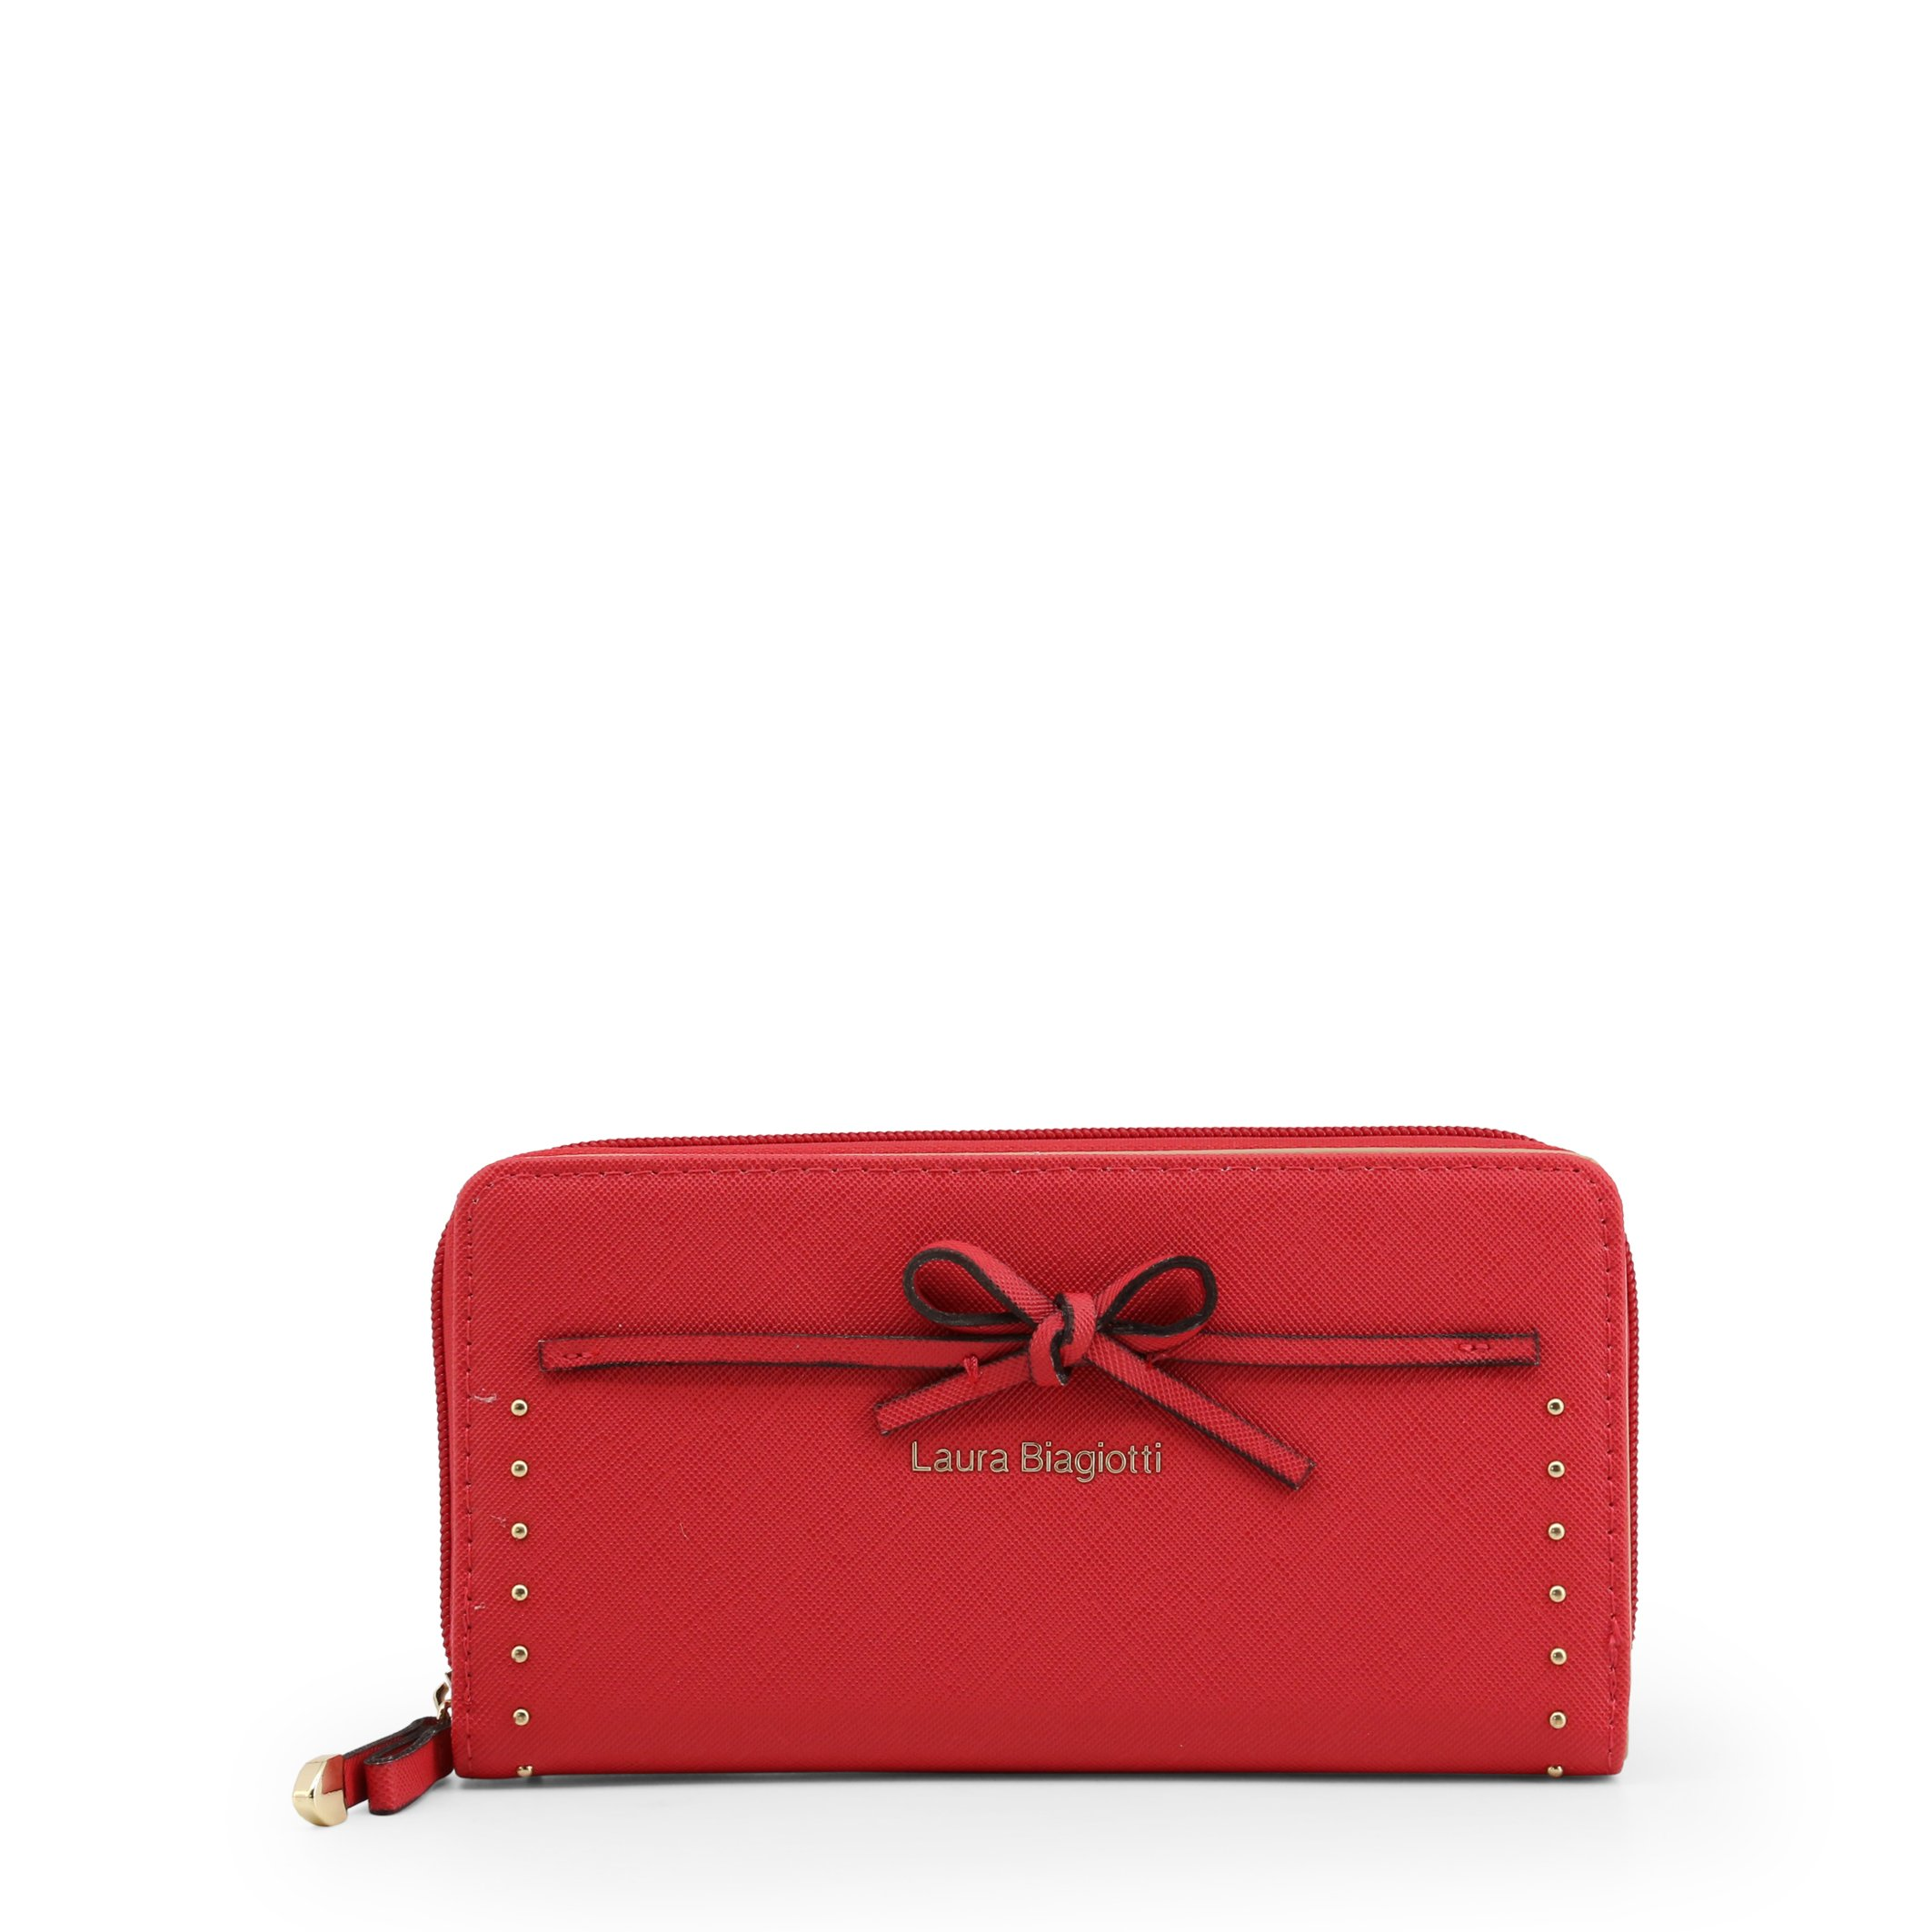 Laura Biagiotti Women's Wallet Various Colours Collar_513-67 - red NOSIZE